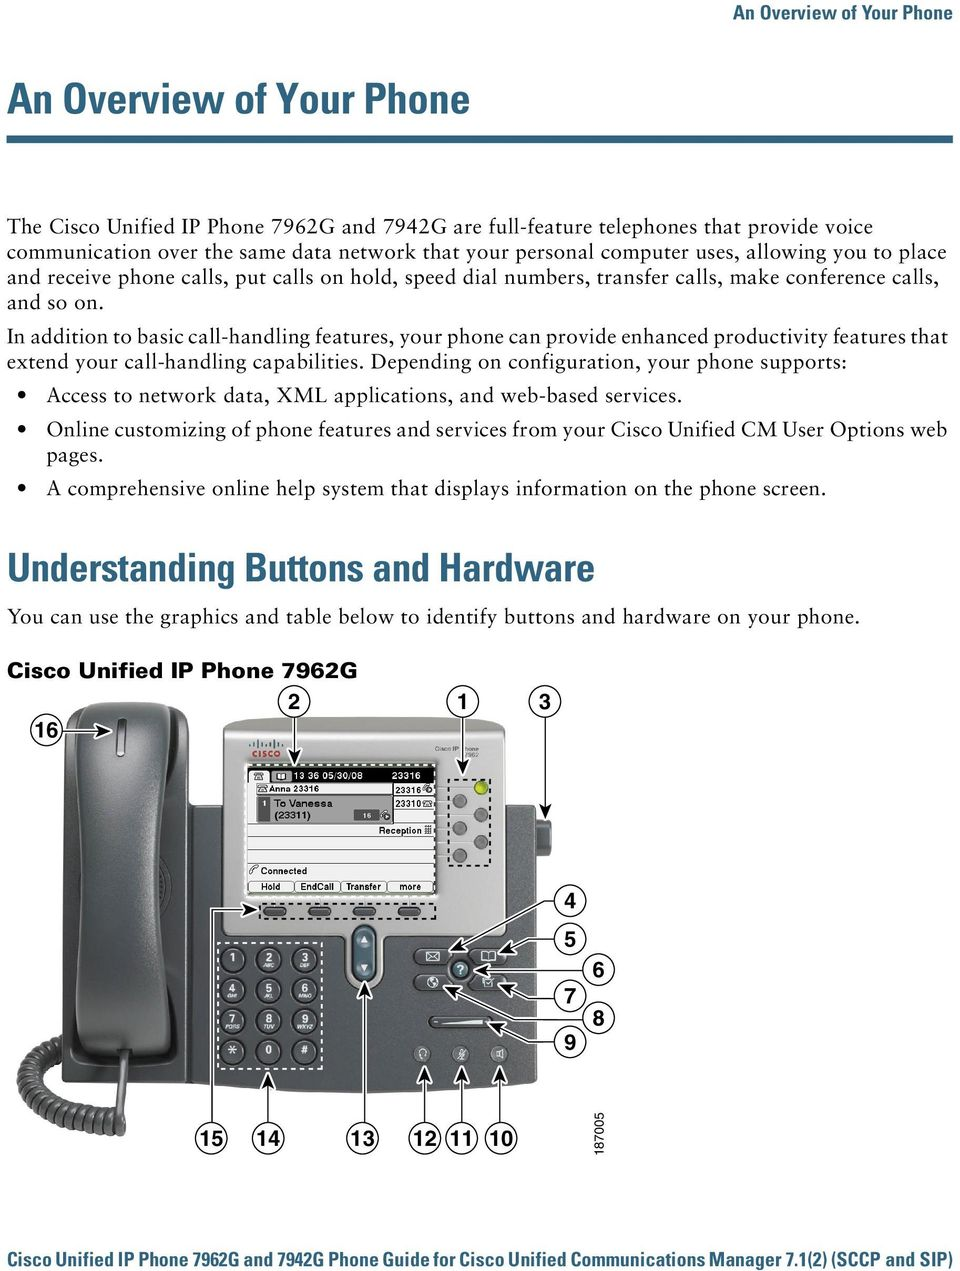 In addition to basic call-handling features, your phone can provide enhanced productivity features that extend your call-handling capabilities.